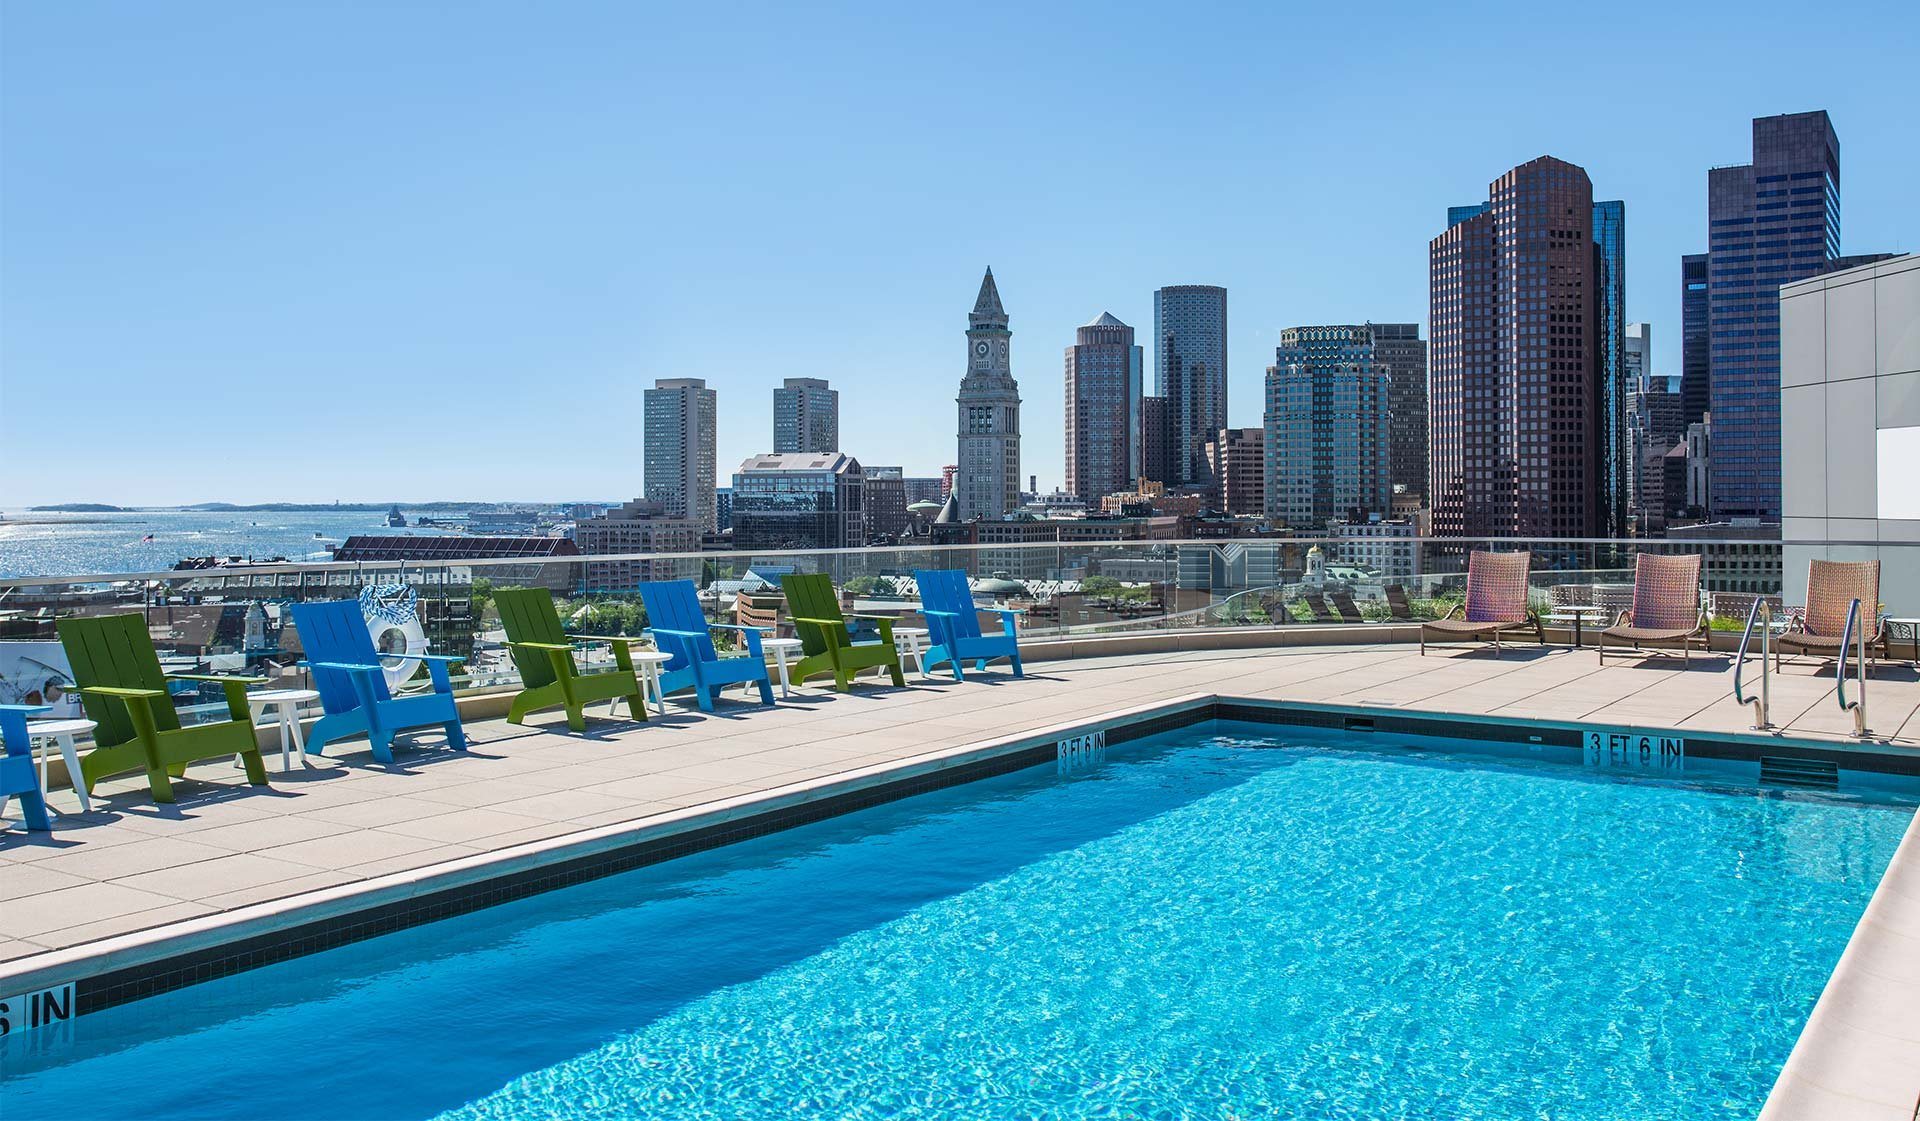 One Canal Apartment Homes - Boston, MA - Pool and City Skyline View